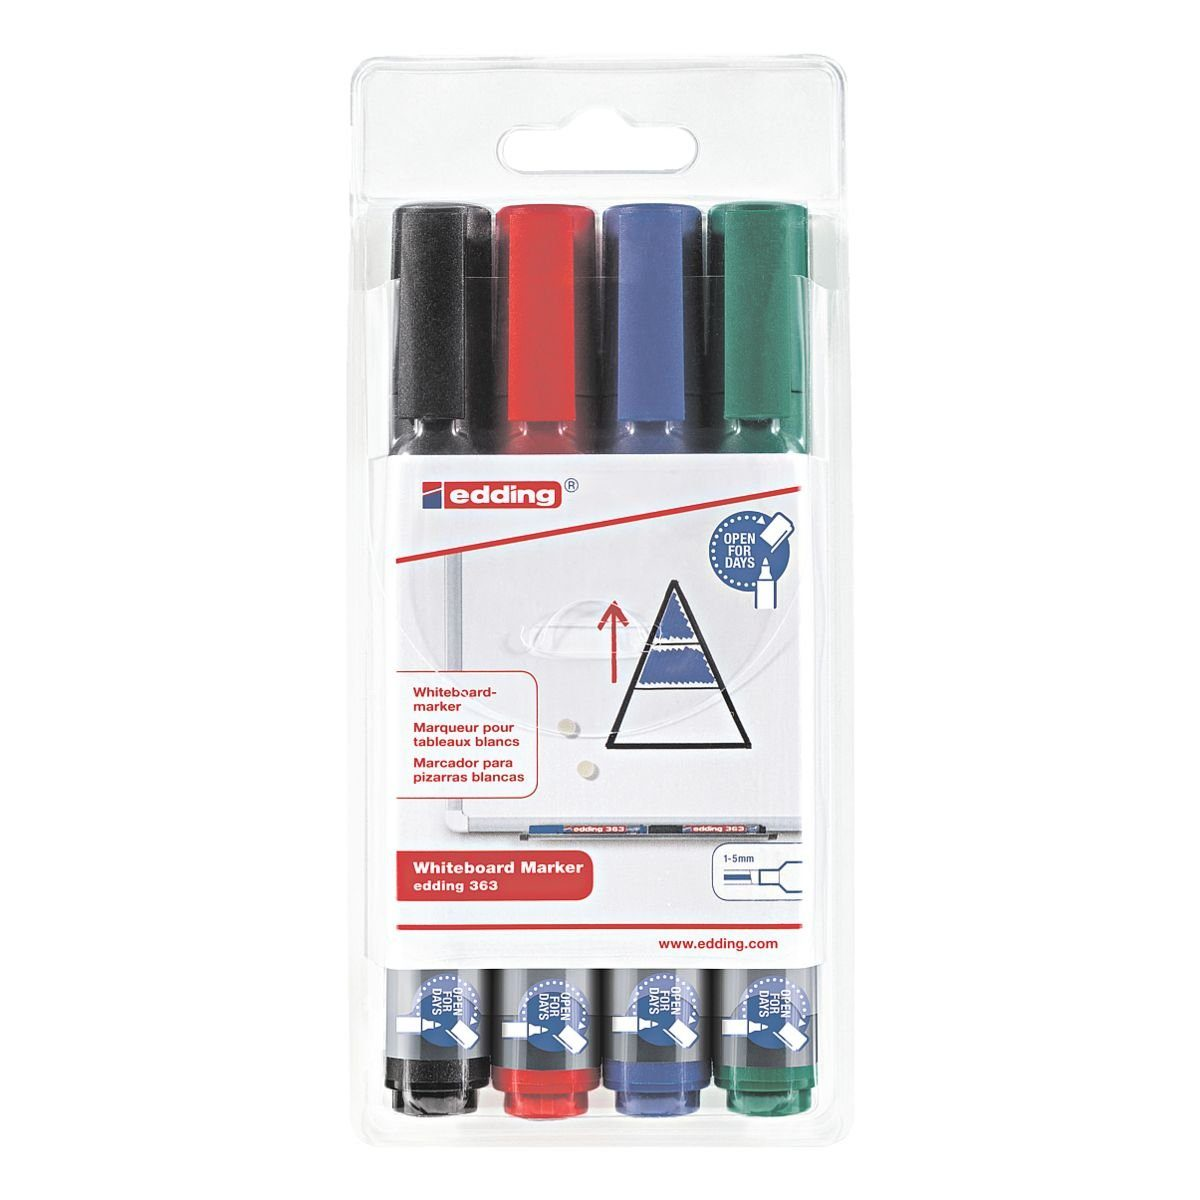 edding 4er-Pack Whiteboard-Marker »363«